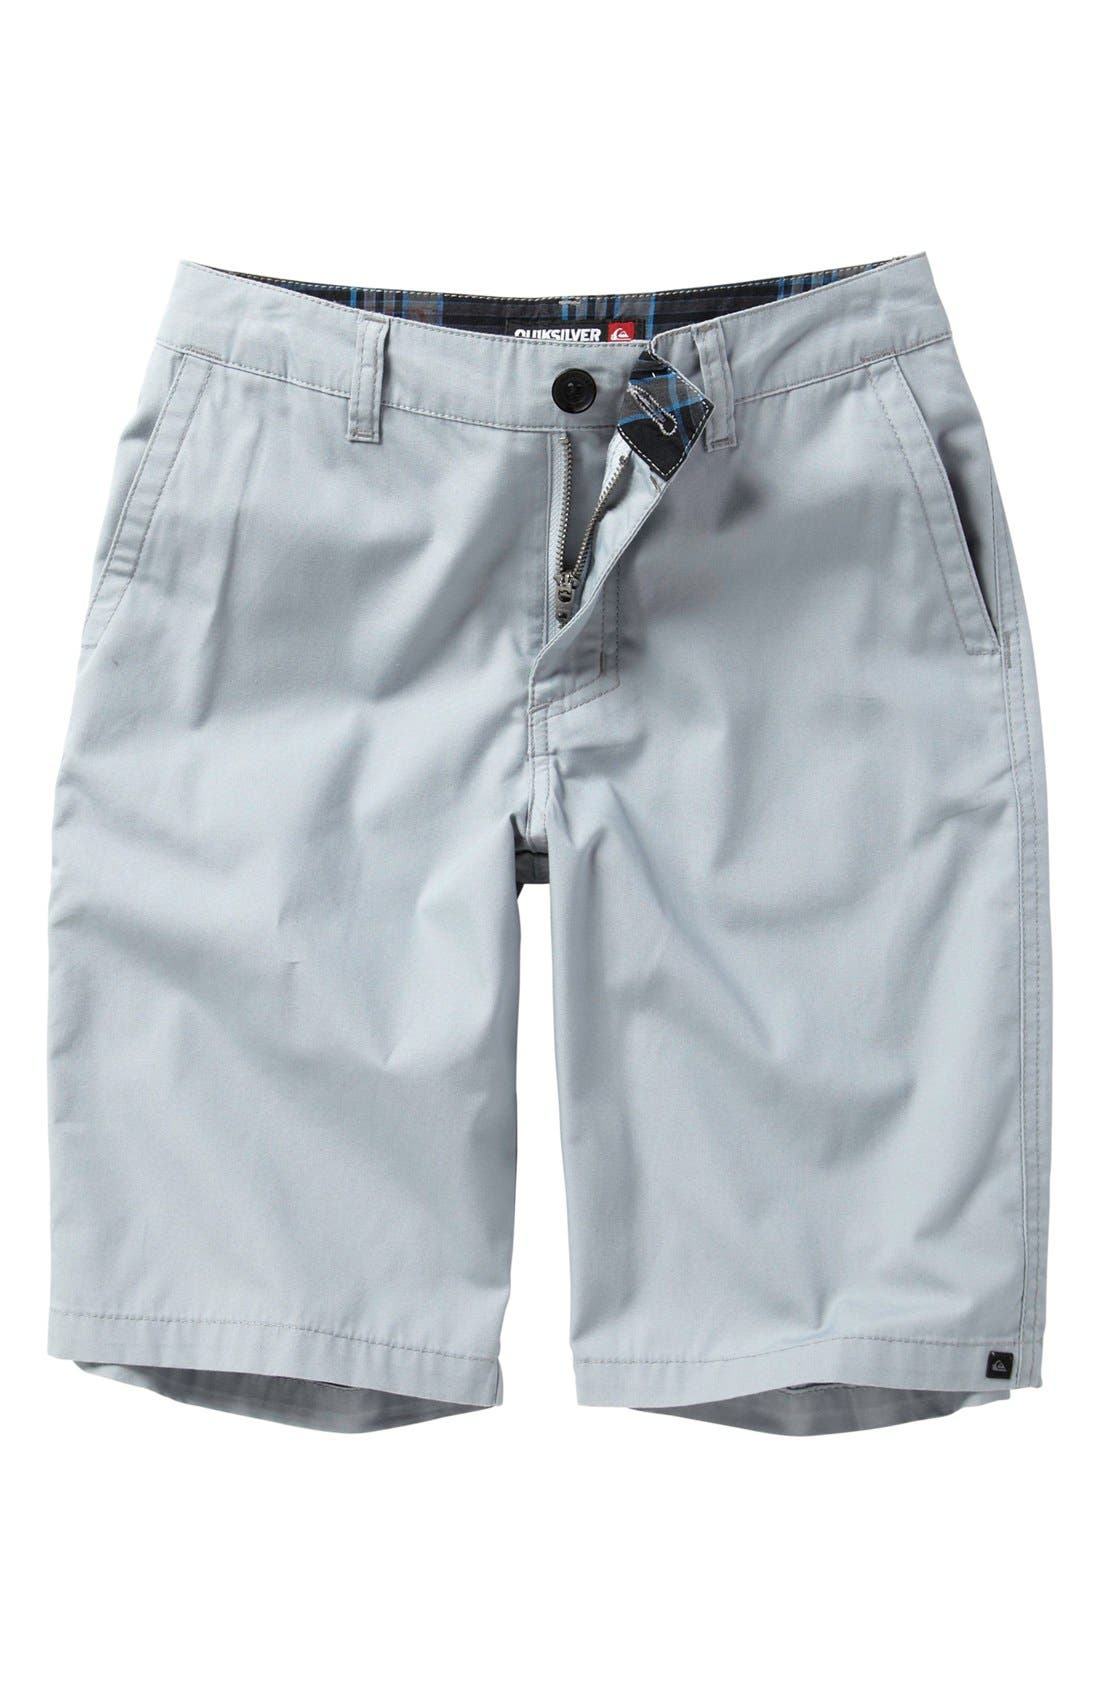 Main Image - Quiksilver 'Rockefeller' Shorts (Big Boys)